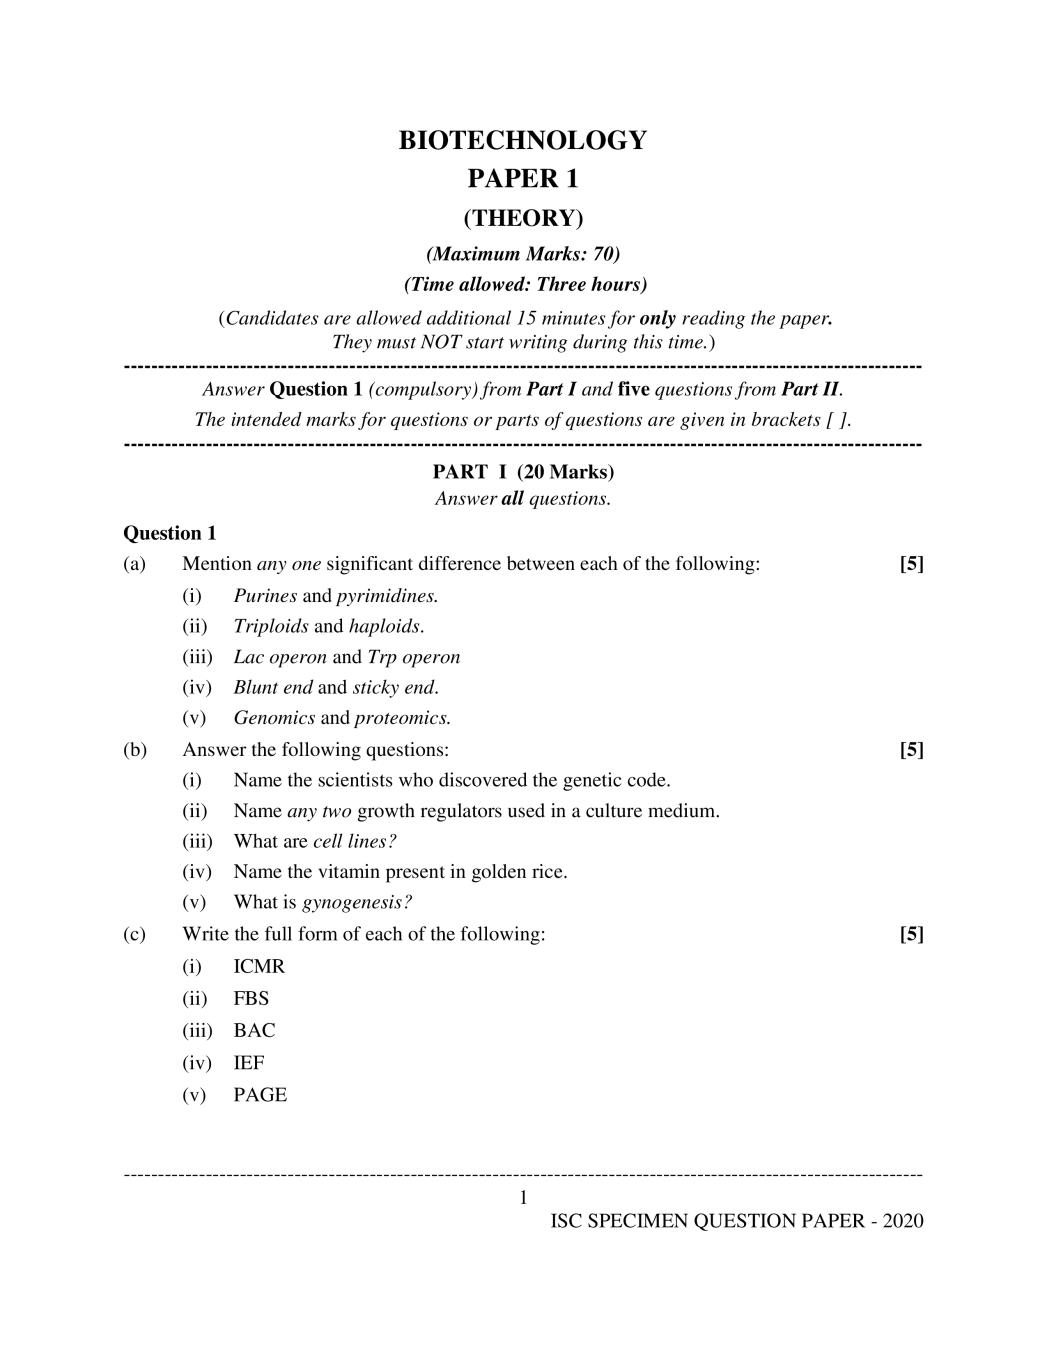 ISC Class 12 Sample Paper 2020 - Biotechnology Specimen Question Paper